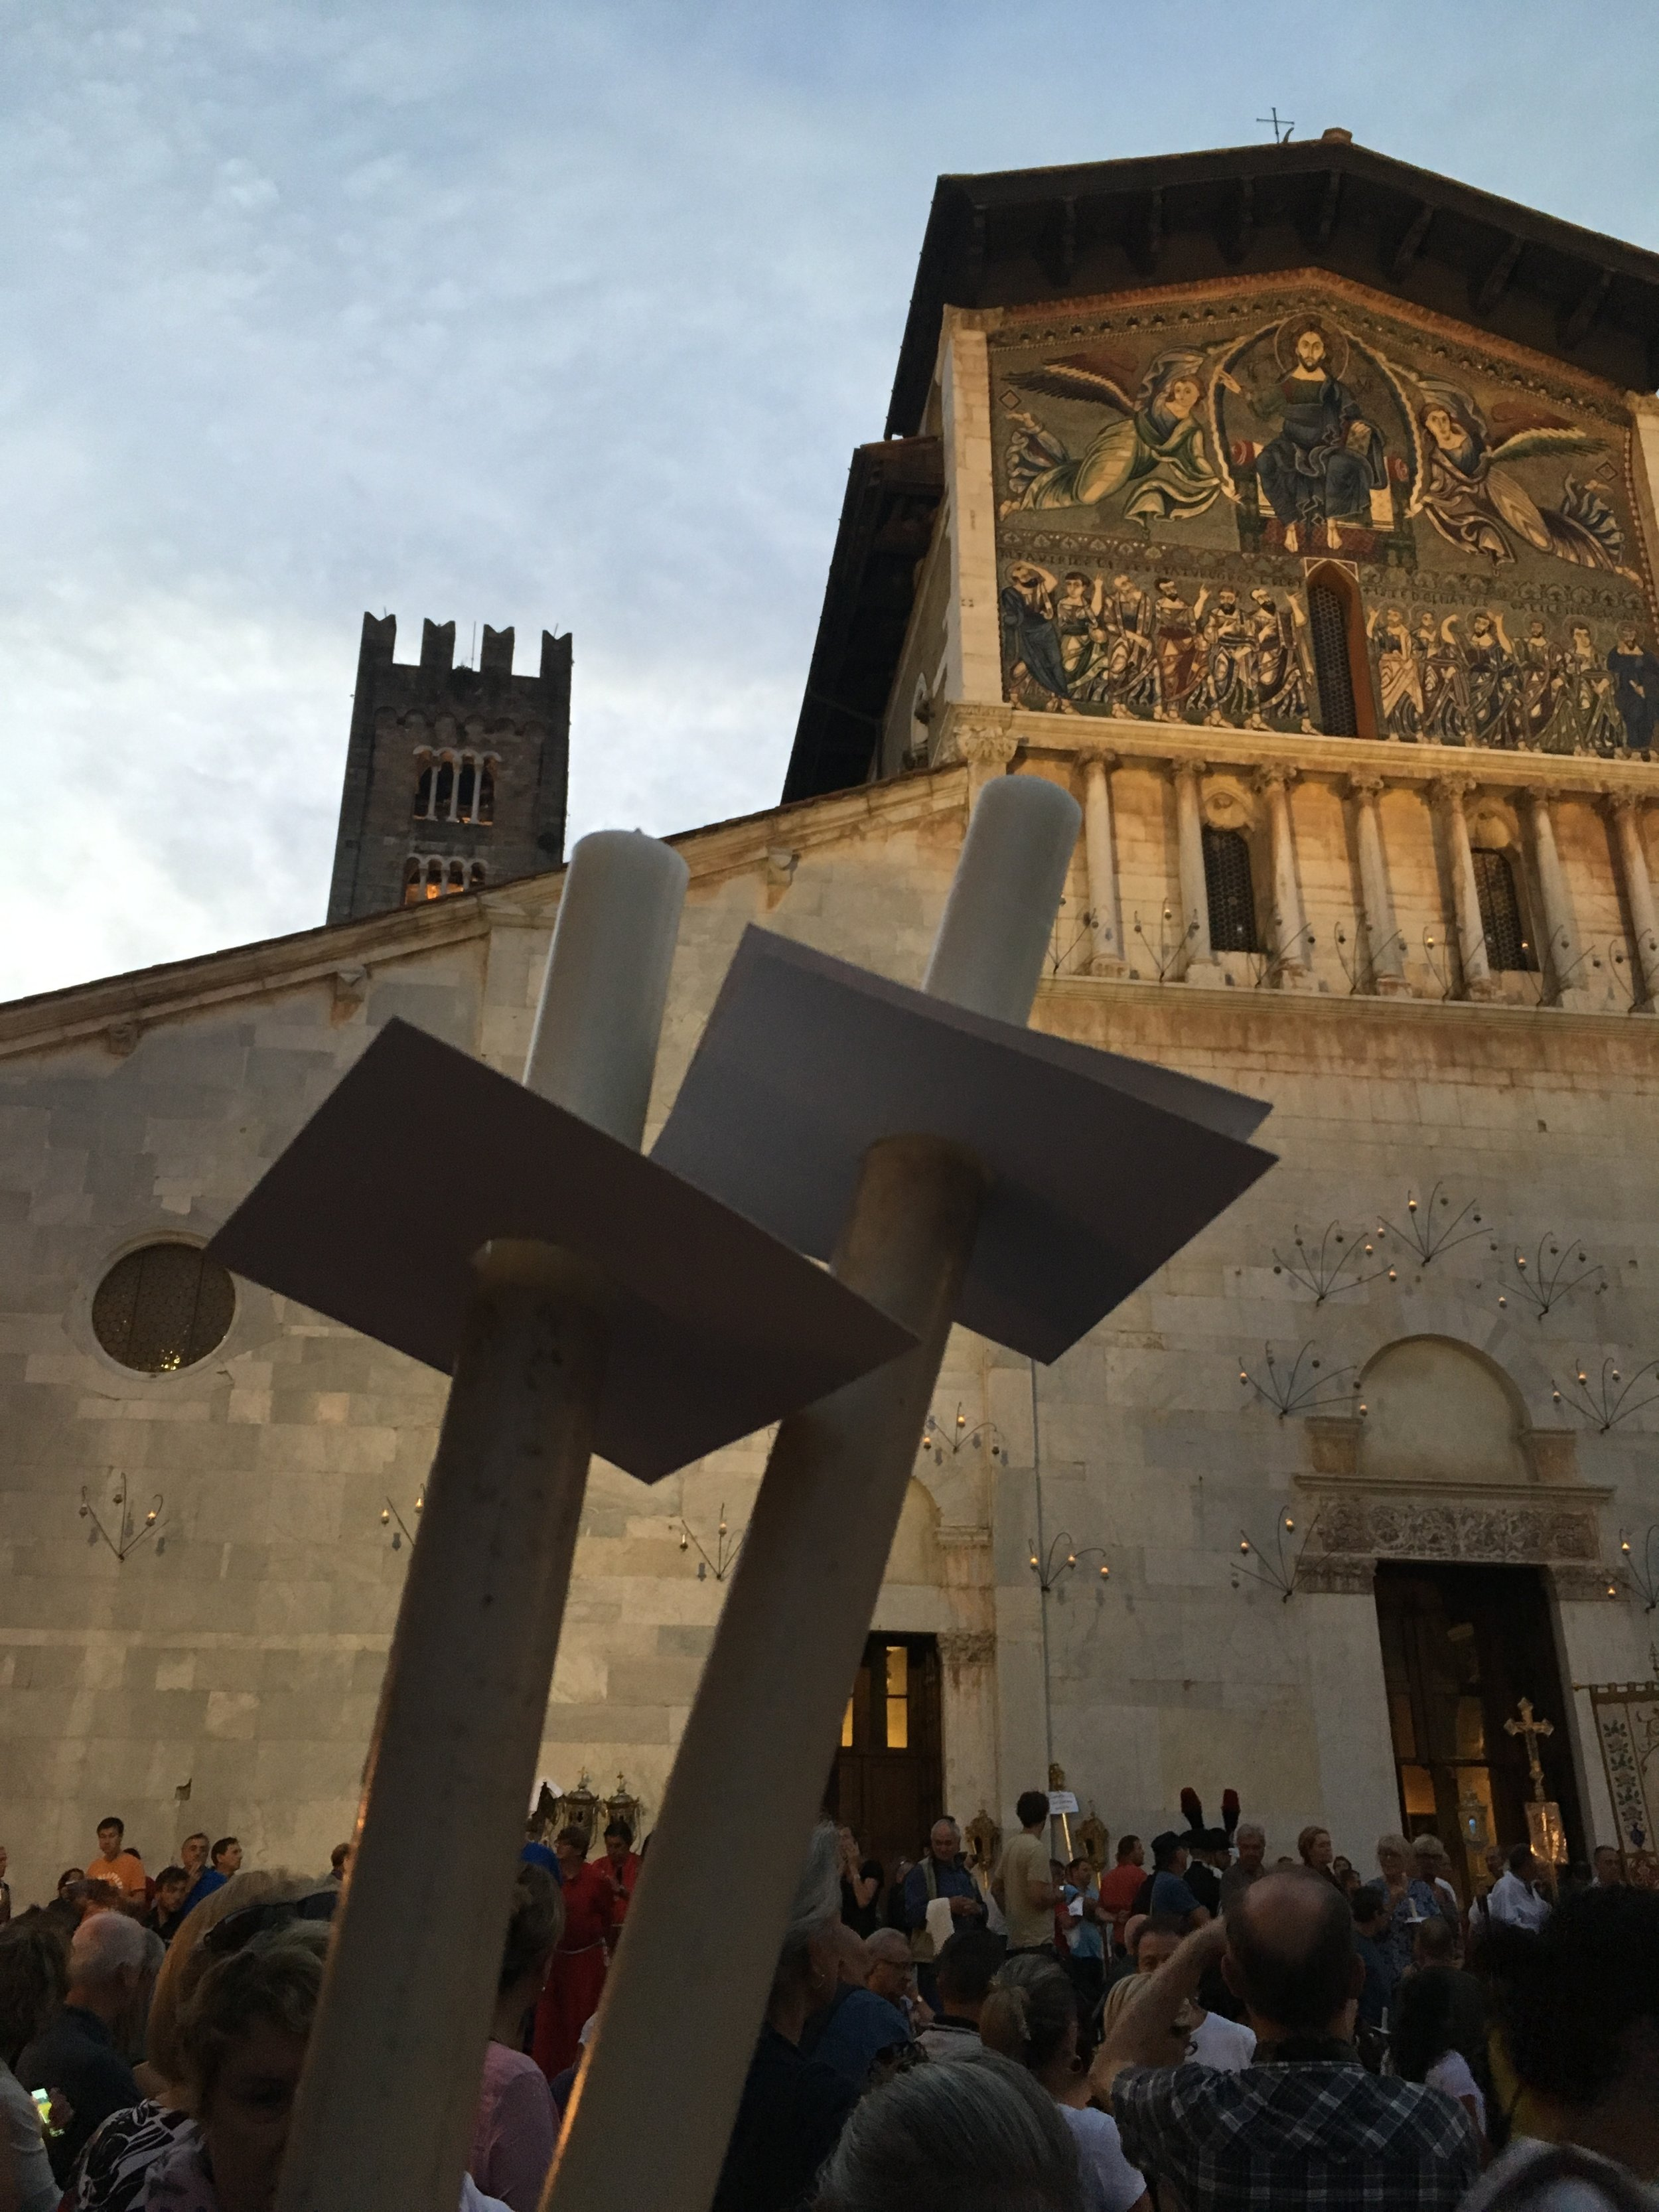 Waiting for the luminaria procession to begin in Piazza San Frediano